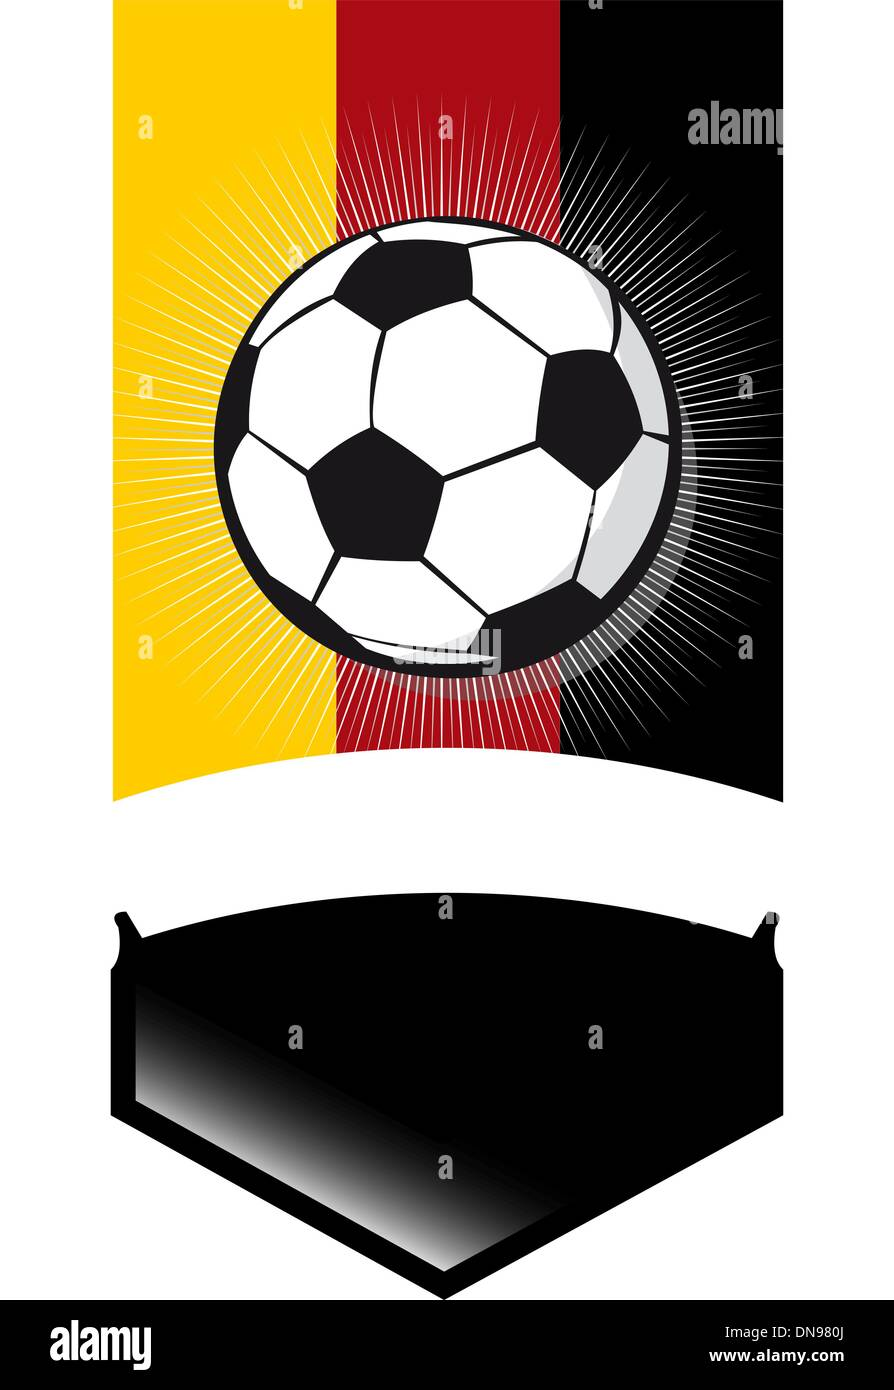 Germany Soccer Championship Banner Stock Vector Art Illustration